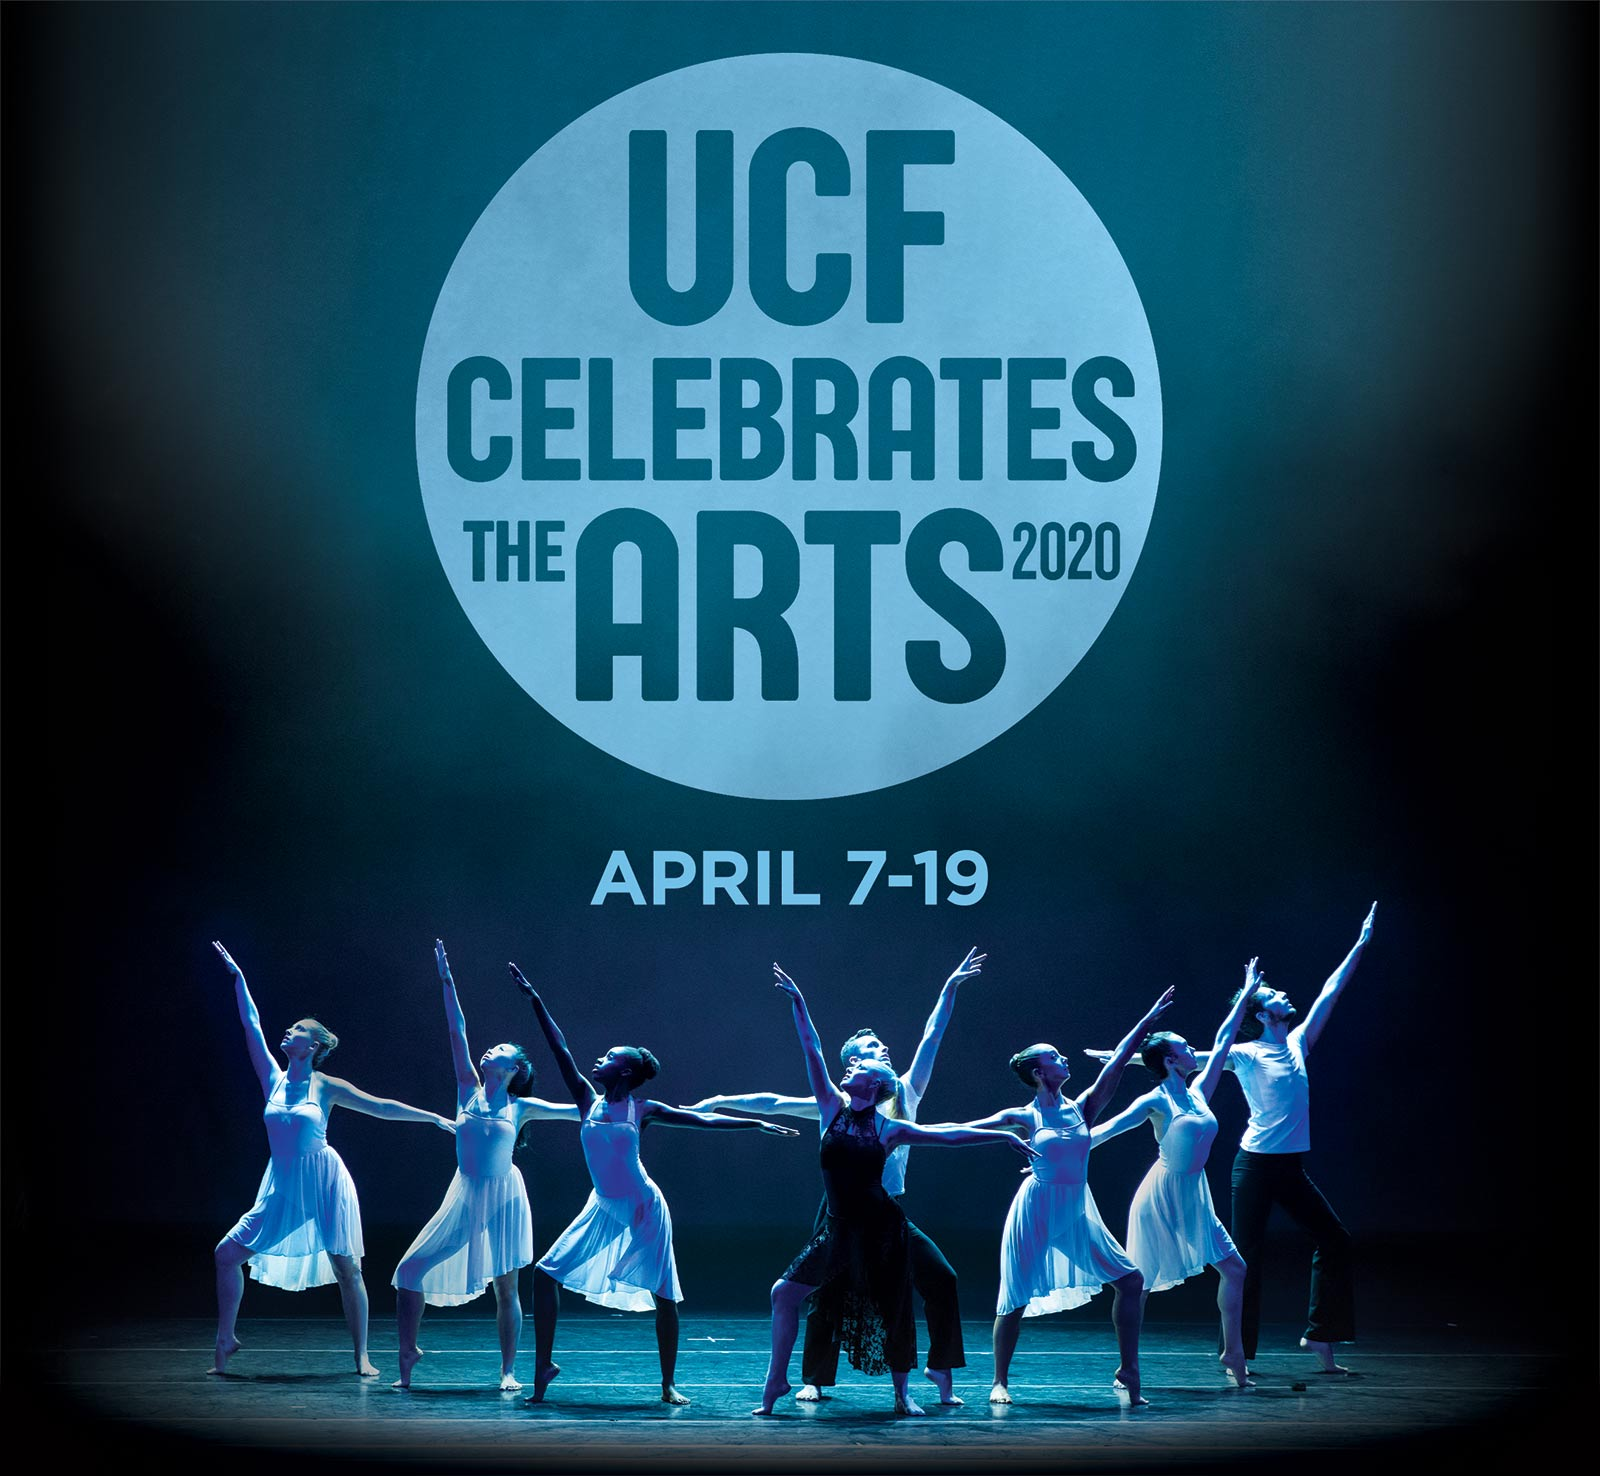 UCF Celebrates the Arts 2020, April 7-19 with photo of ballet dancers